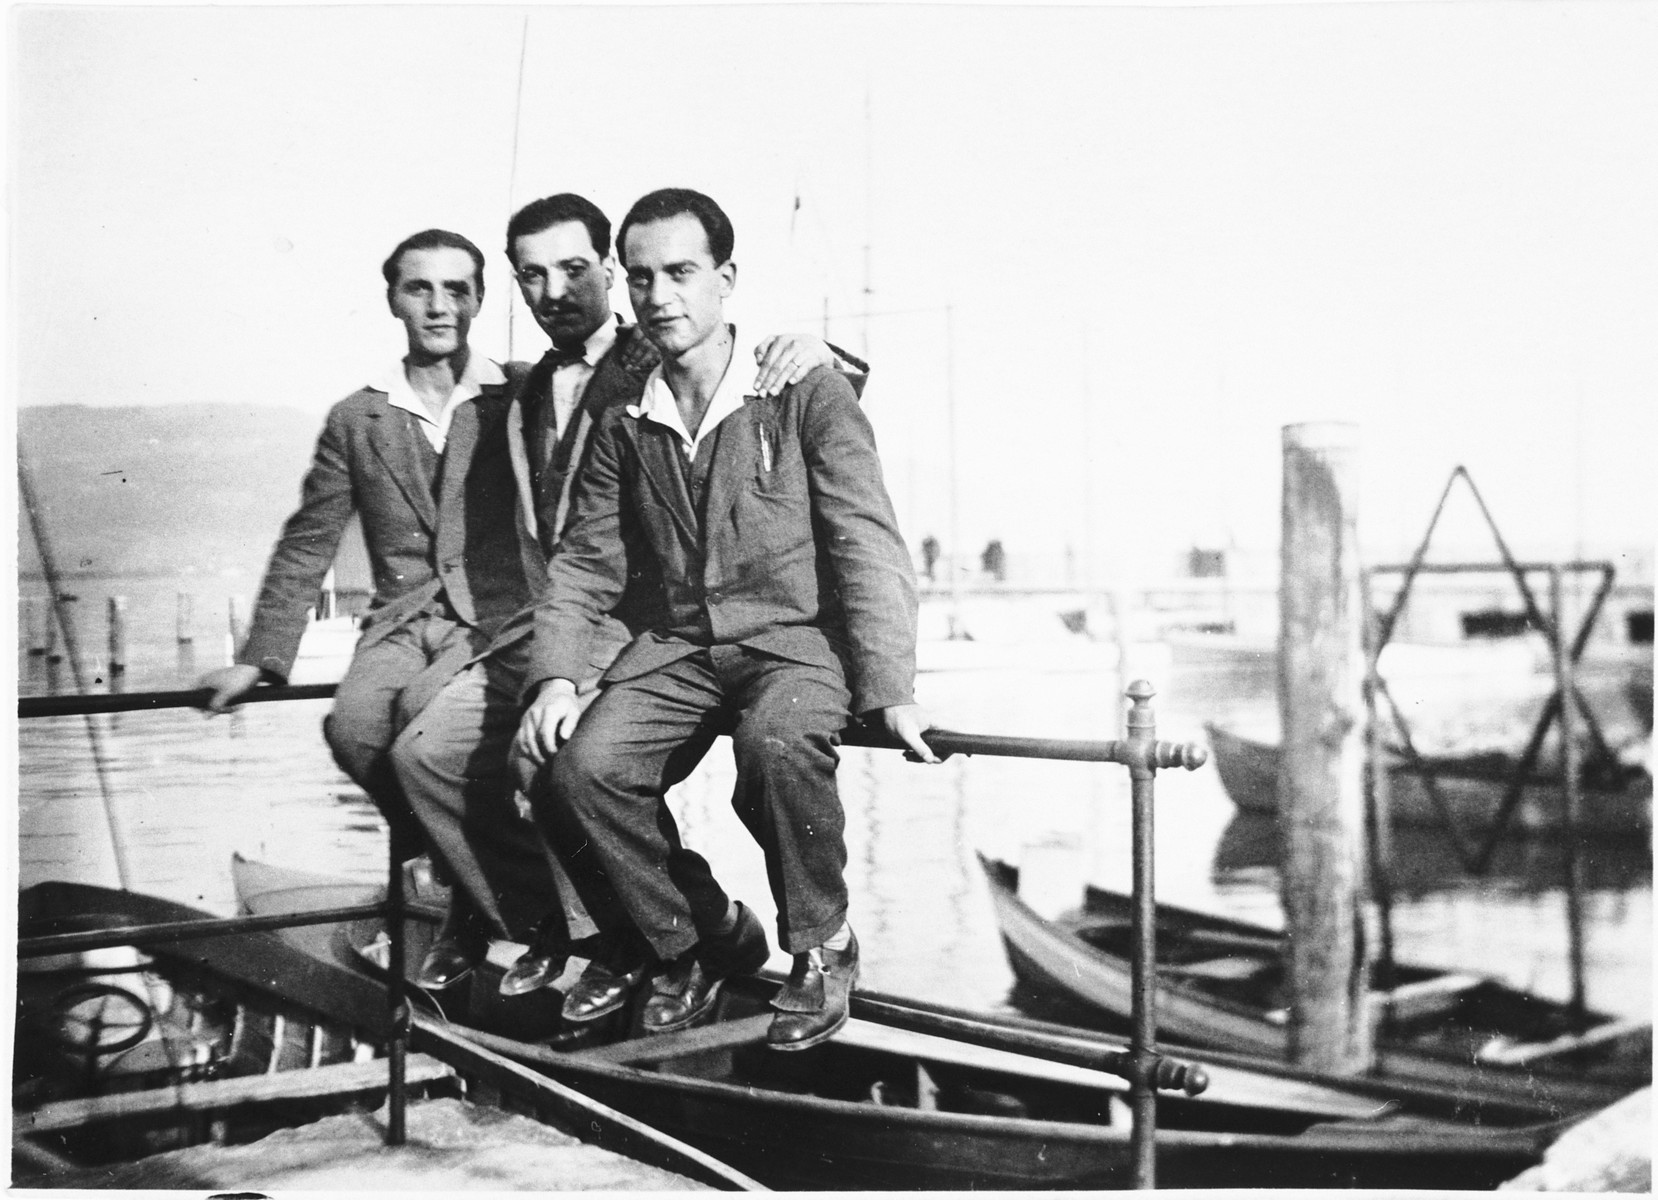 Sigmund Lewitzky (right) and his brothers sit on the railing of a dock.